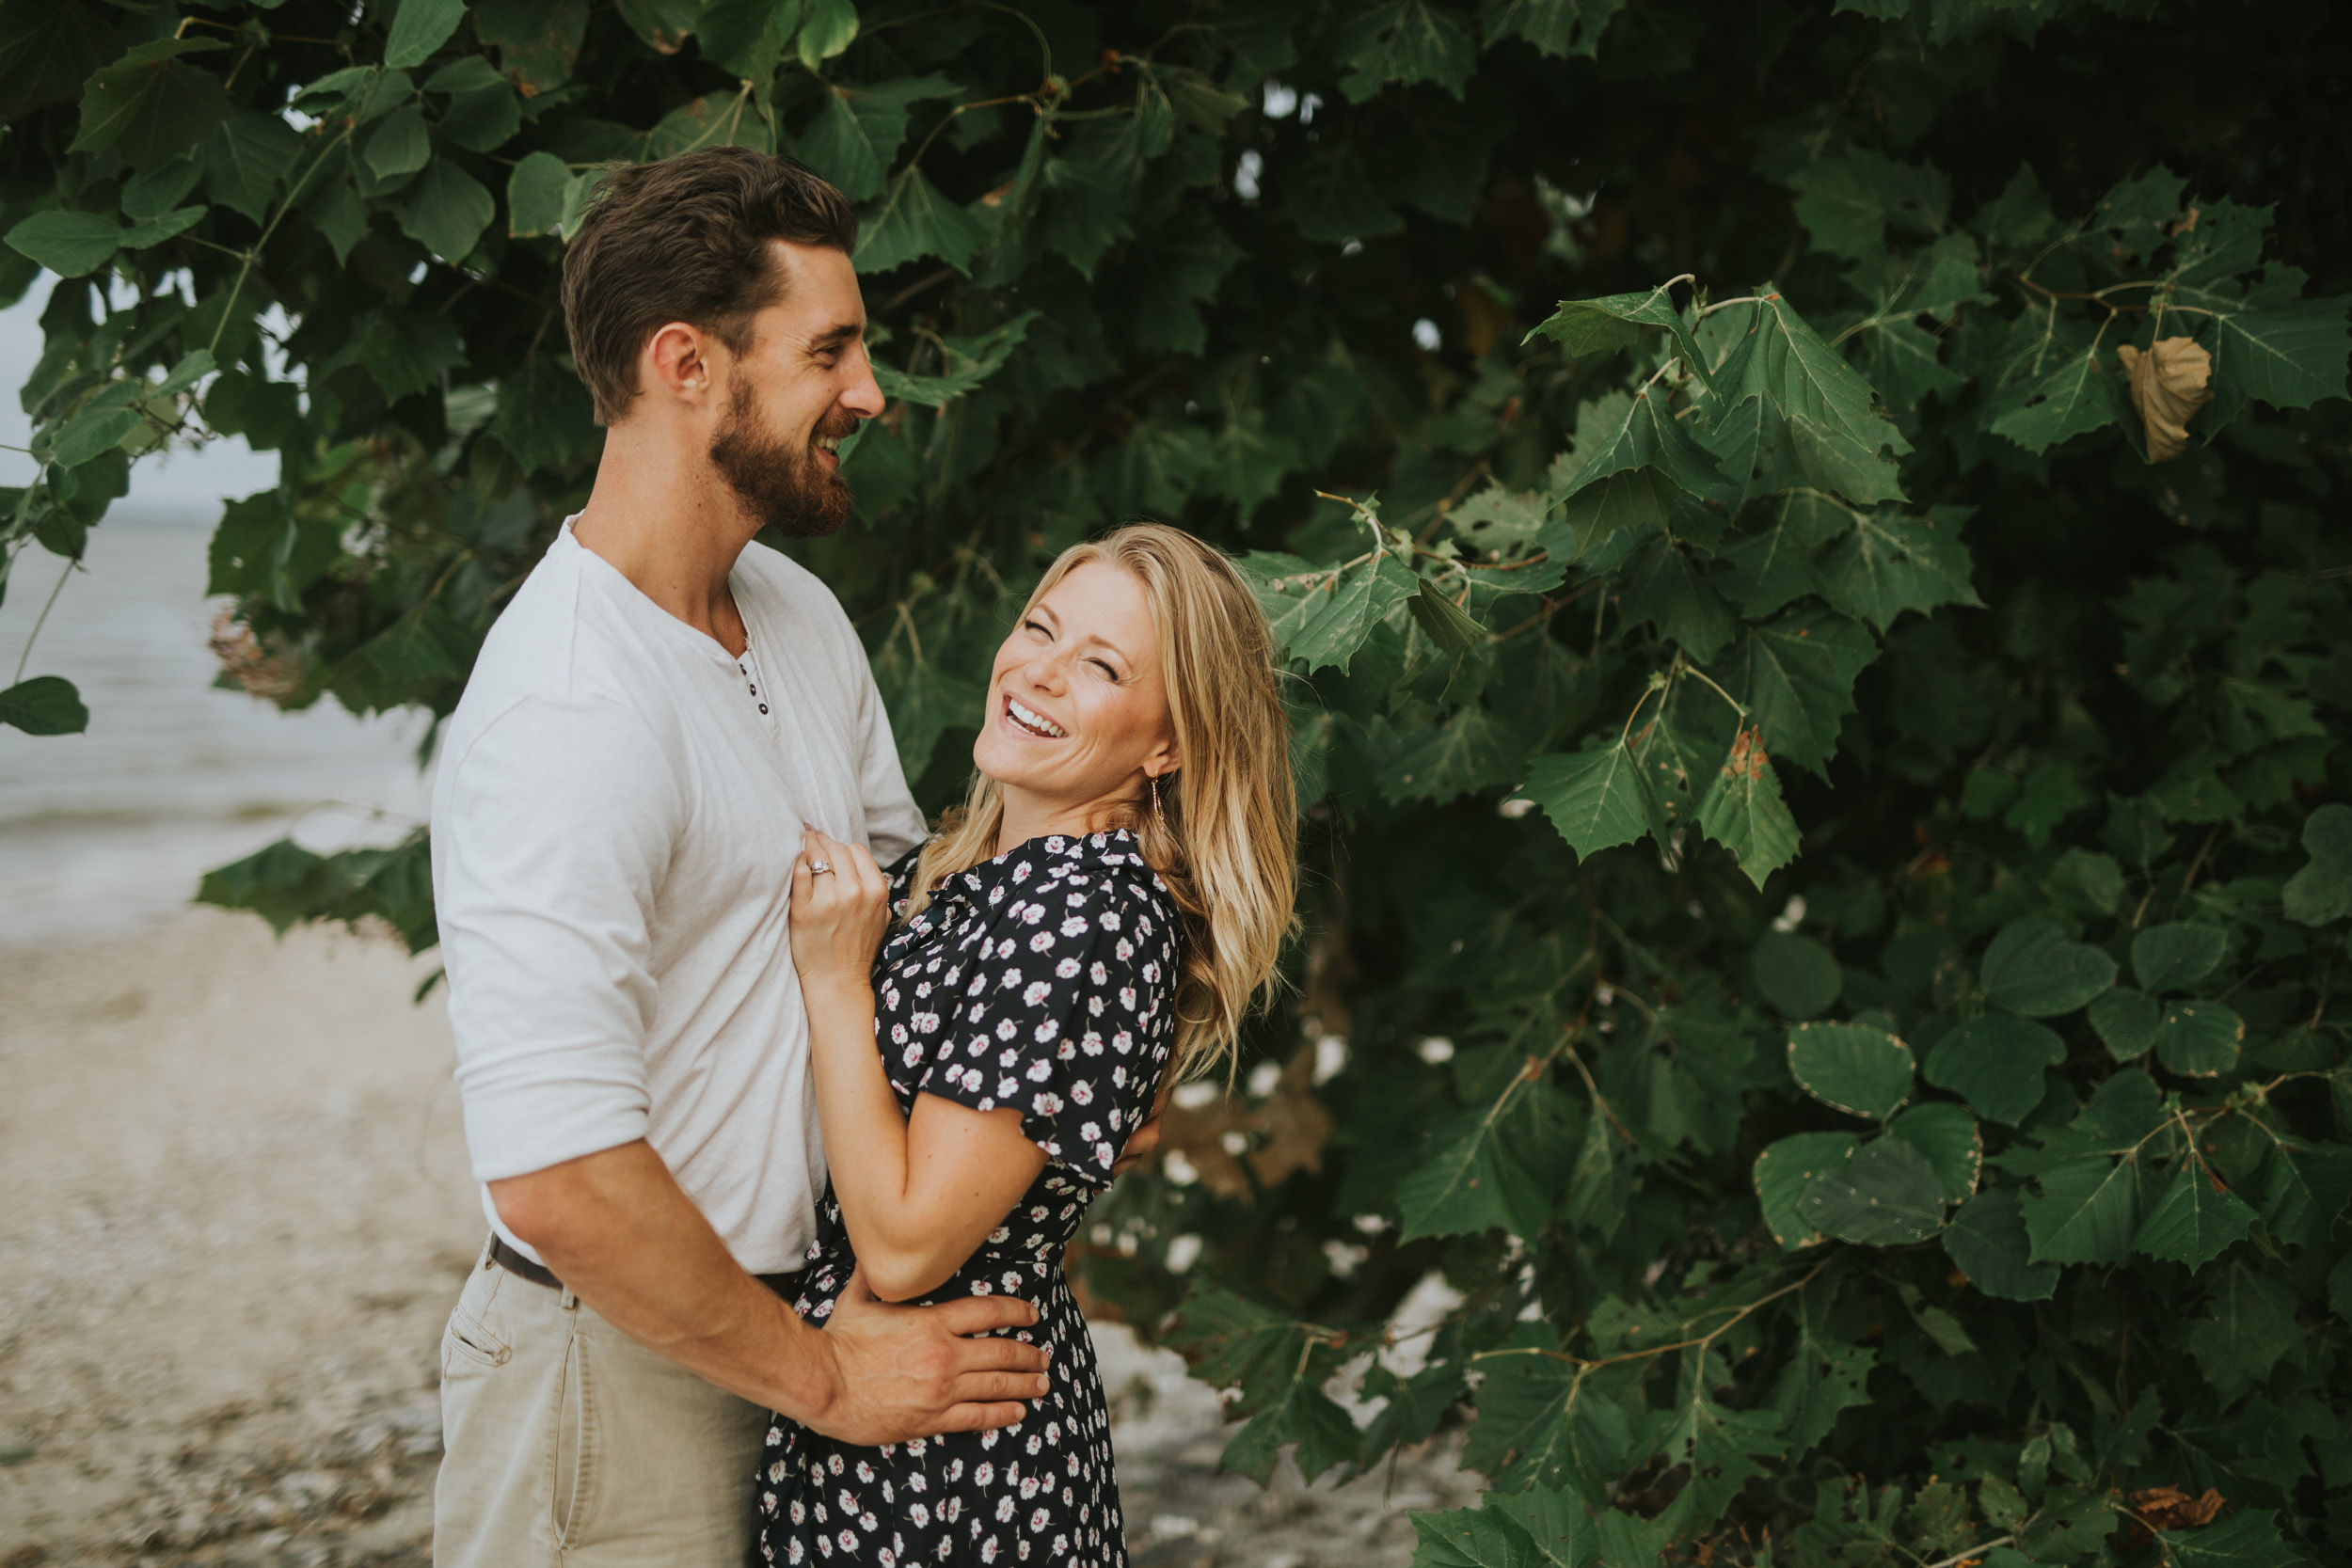 Boho Outdoor Engagement Session_Polly C Photography_20171717171734.jpg